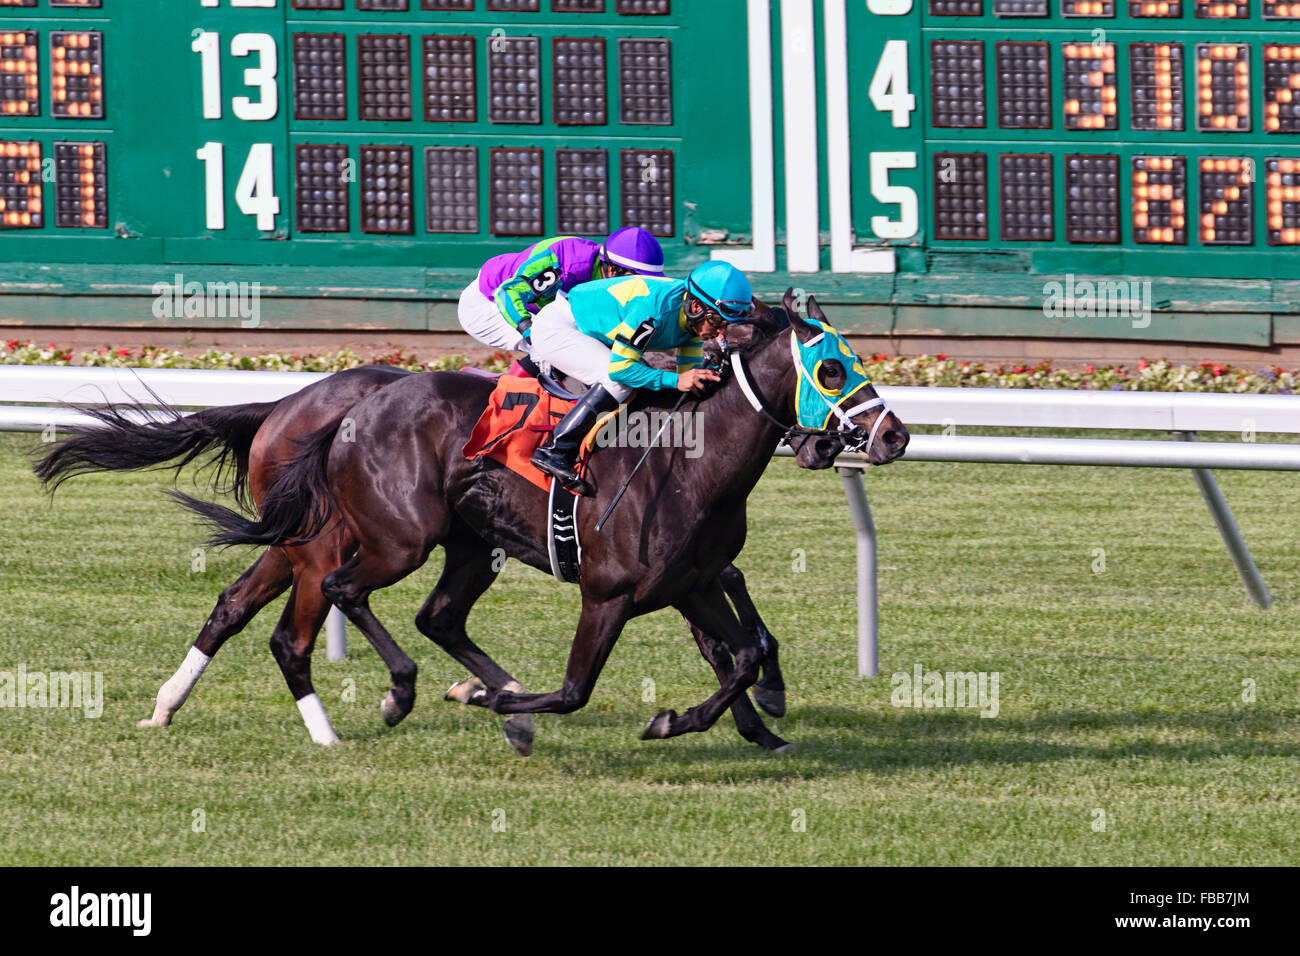 Two Horses with Jockeys Racing Head-To-Head at Monmouth Park Race Track, Oceanport, New Jersey - Stock Image